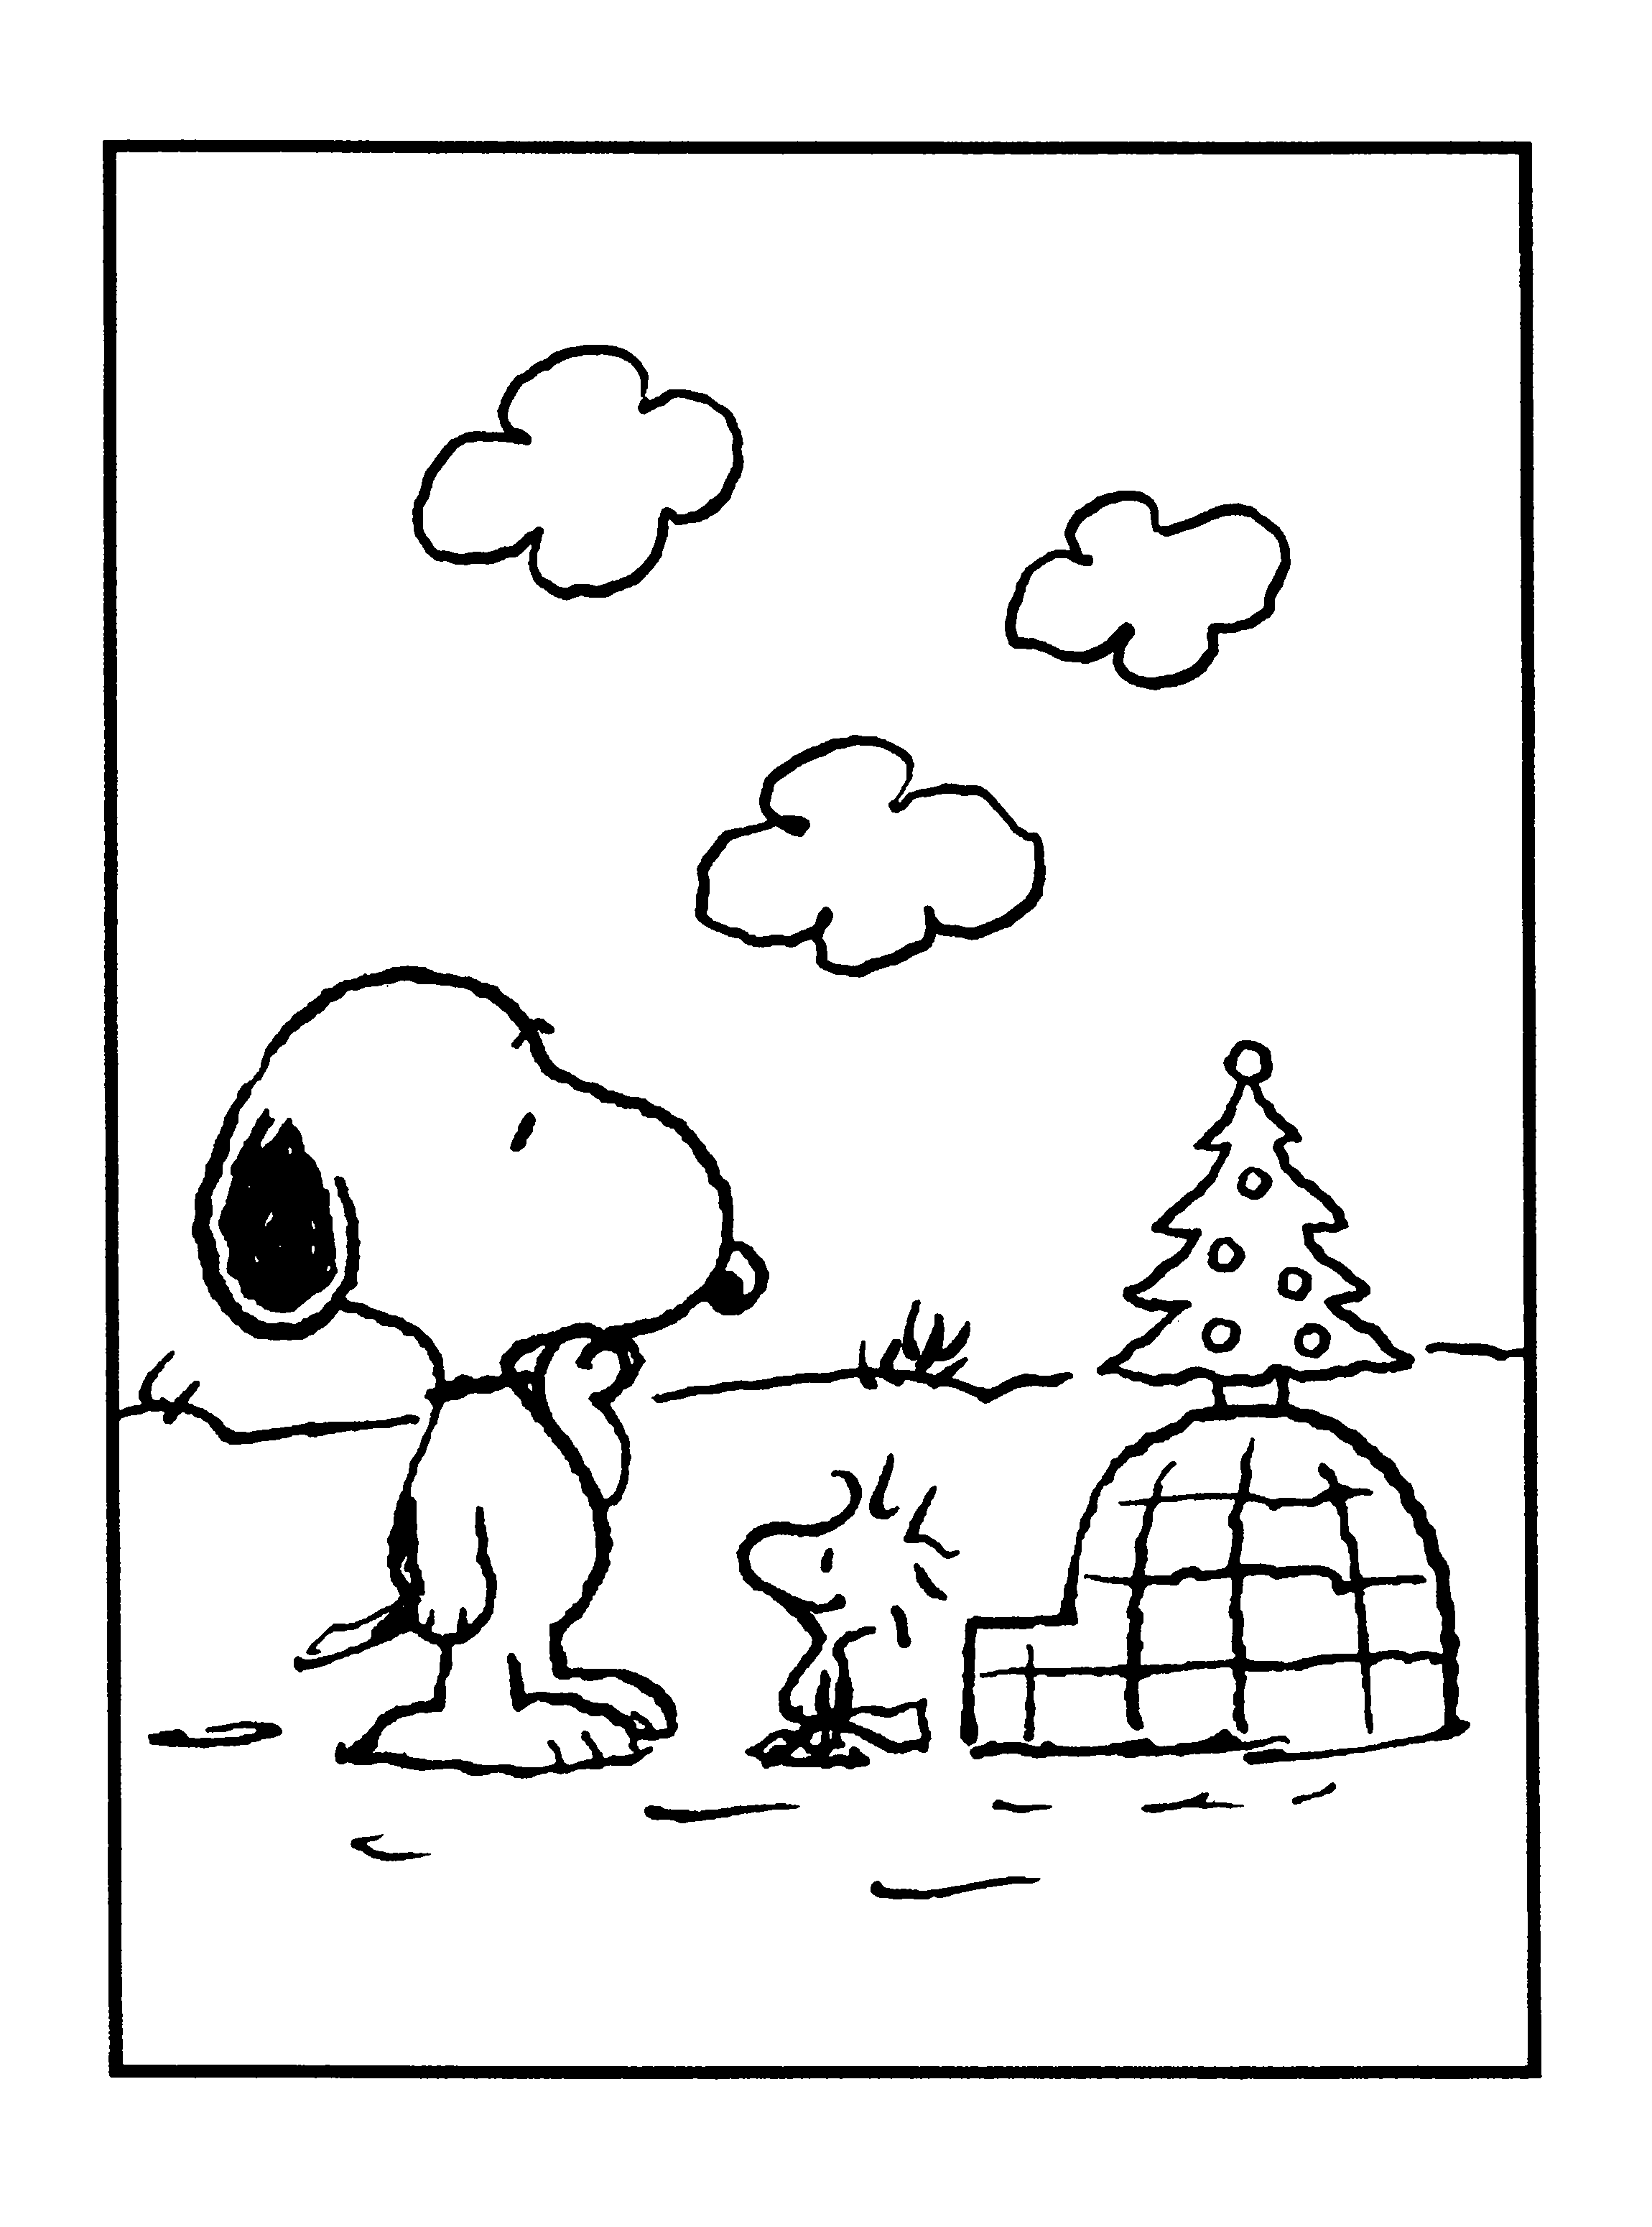 peanuts xmas coloring and activity book | snoopy + woodstock